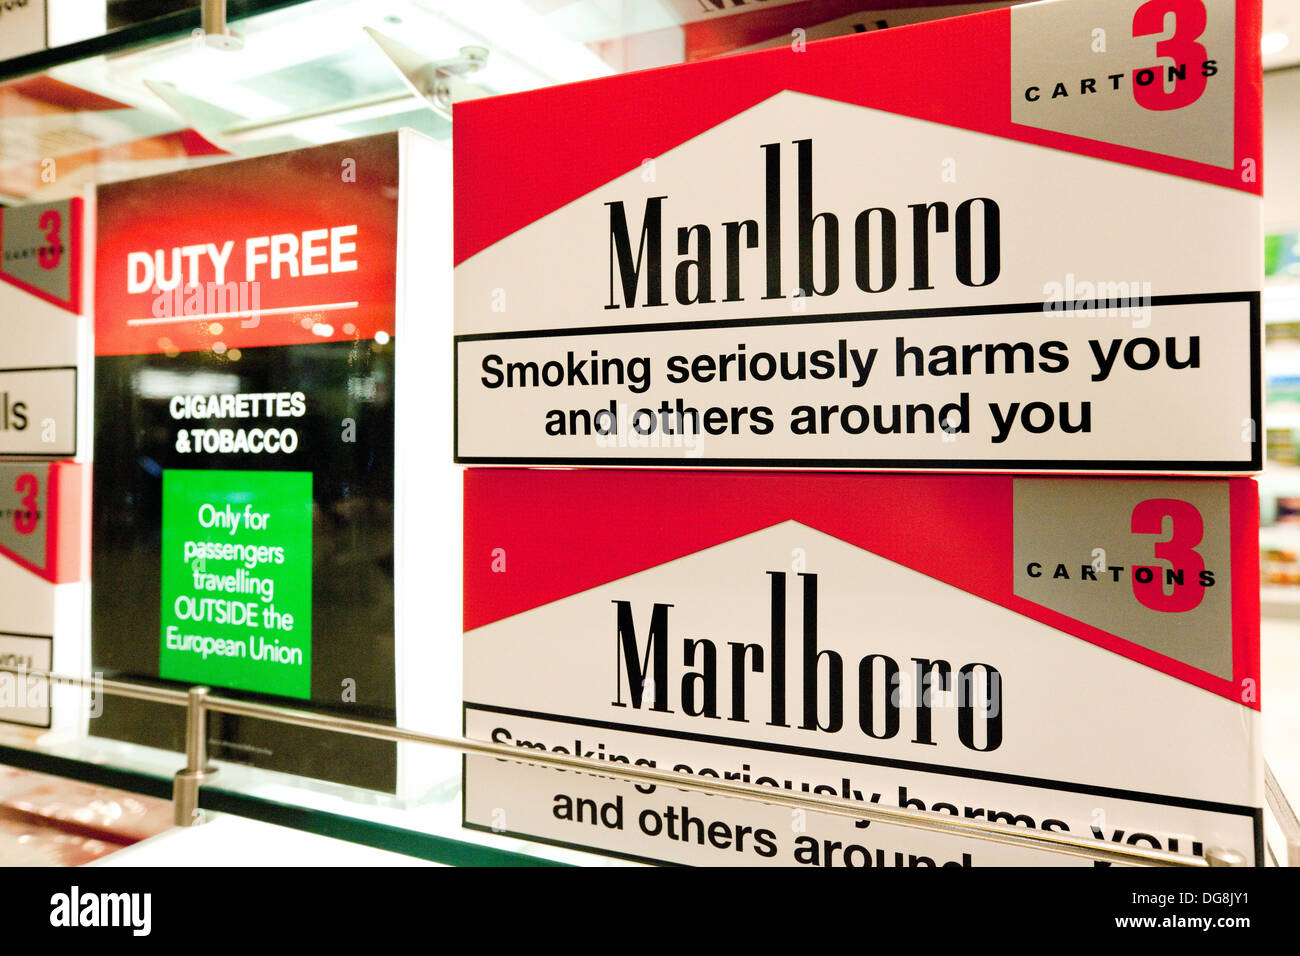 Where to get Monte Carlo cigarettes in Canada